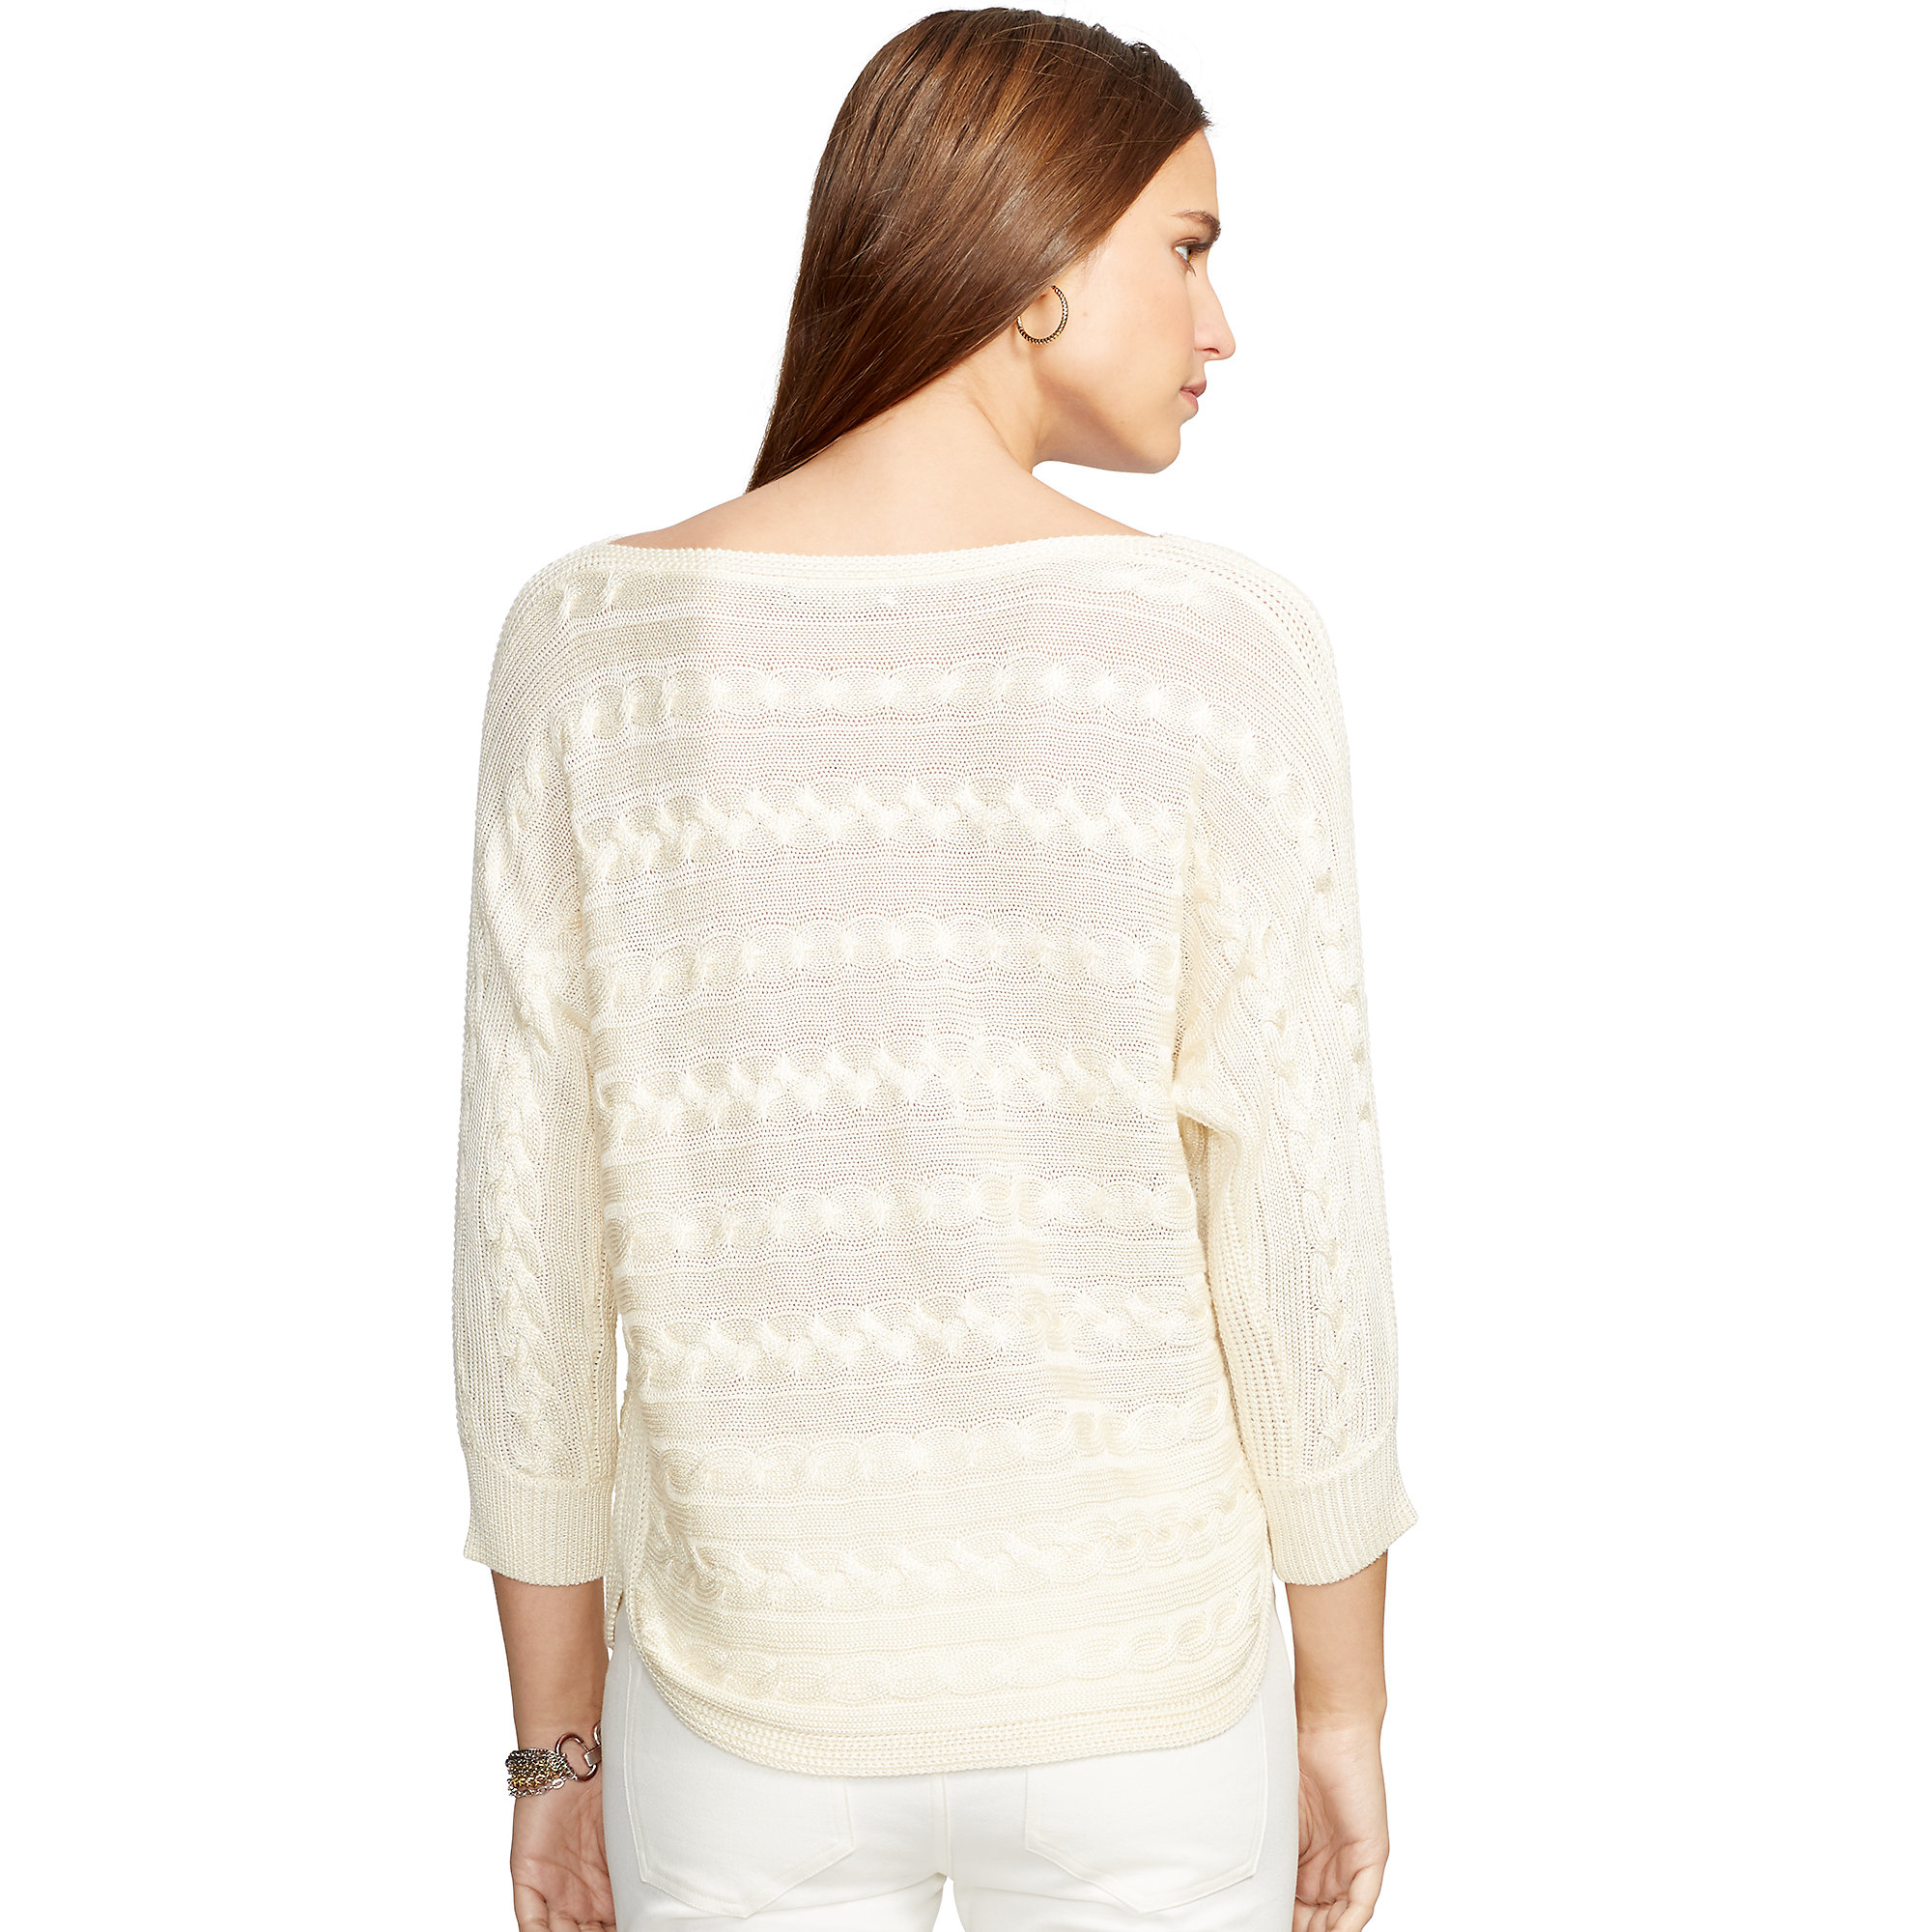 Knitting Pattern For Dolman Sleeve Sweater : Pink pony Cable-knit Dolman Sweater in Natural Lyst